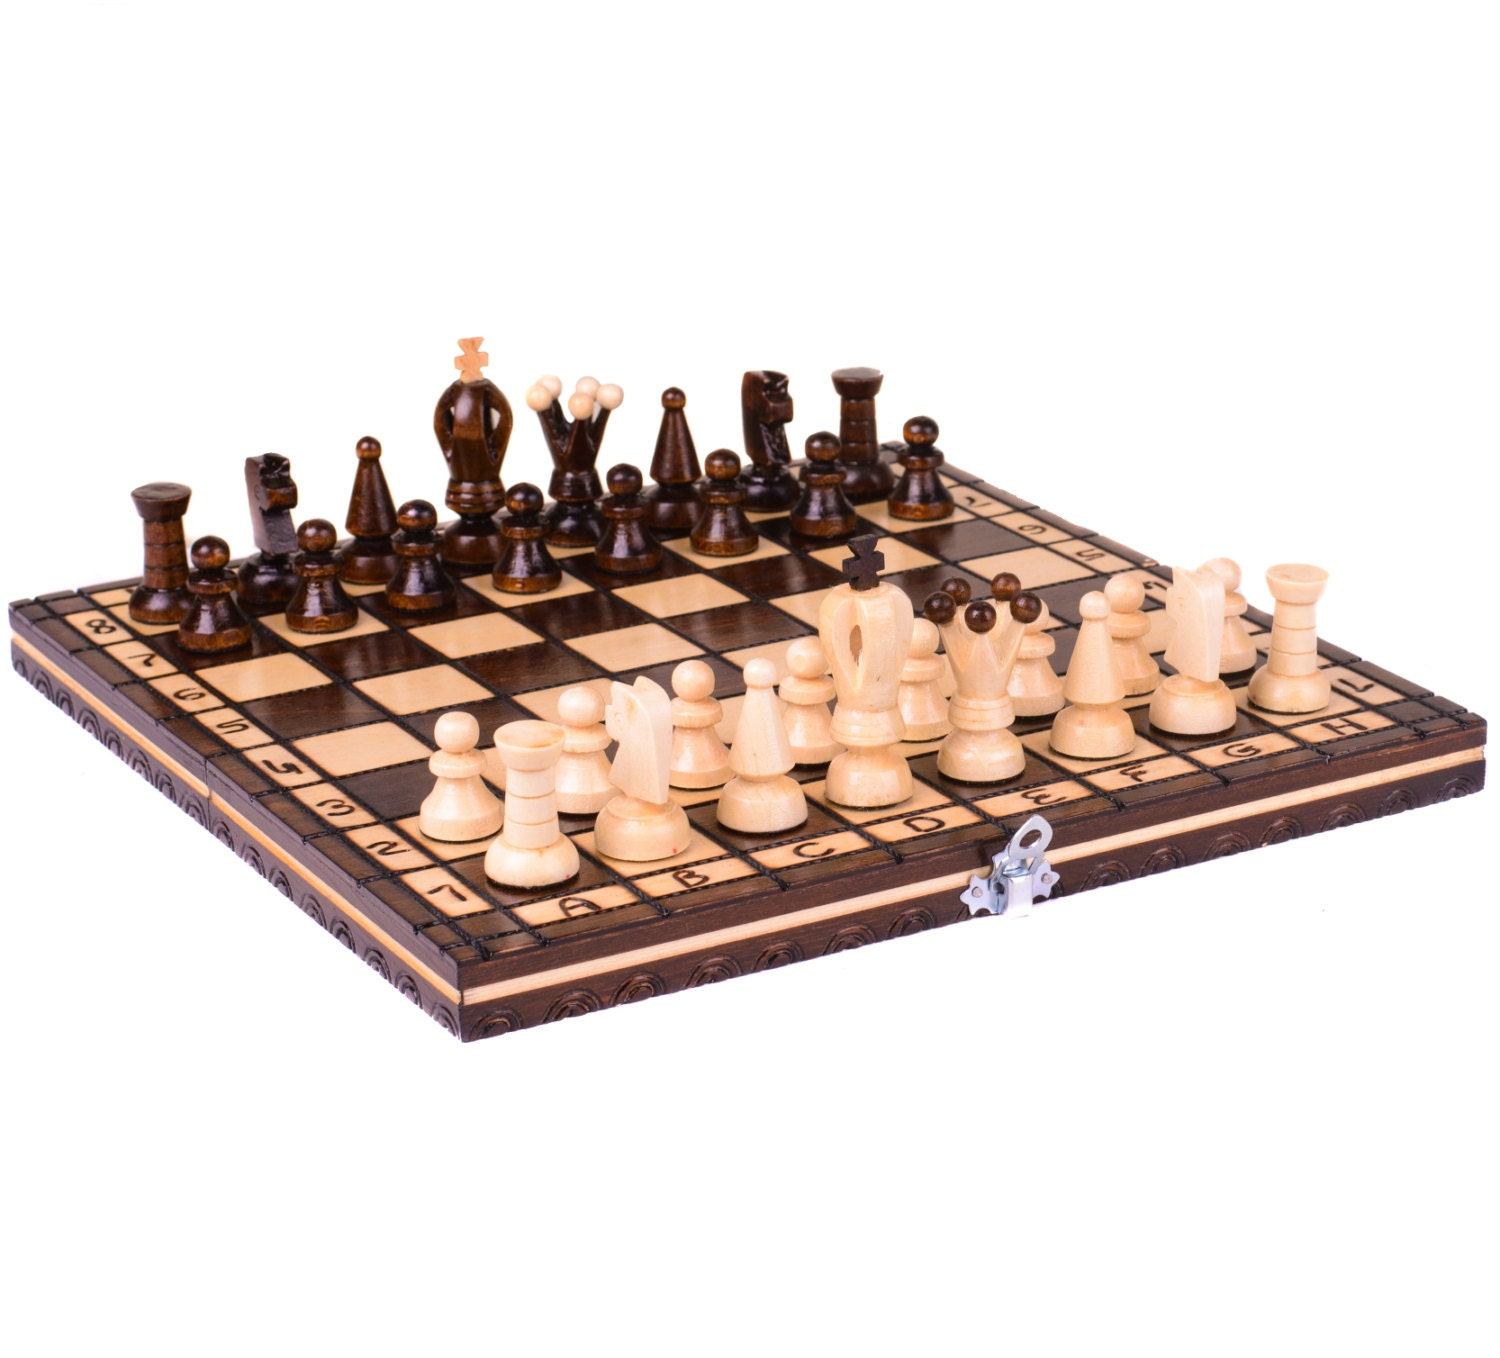 Wooden chess set wooden chess board wood chess set chess - Wooden chess tables ...